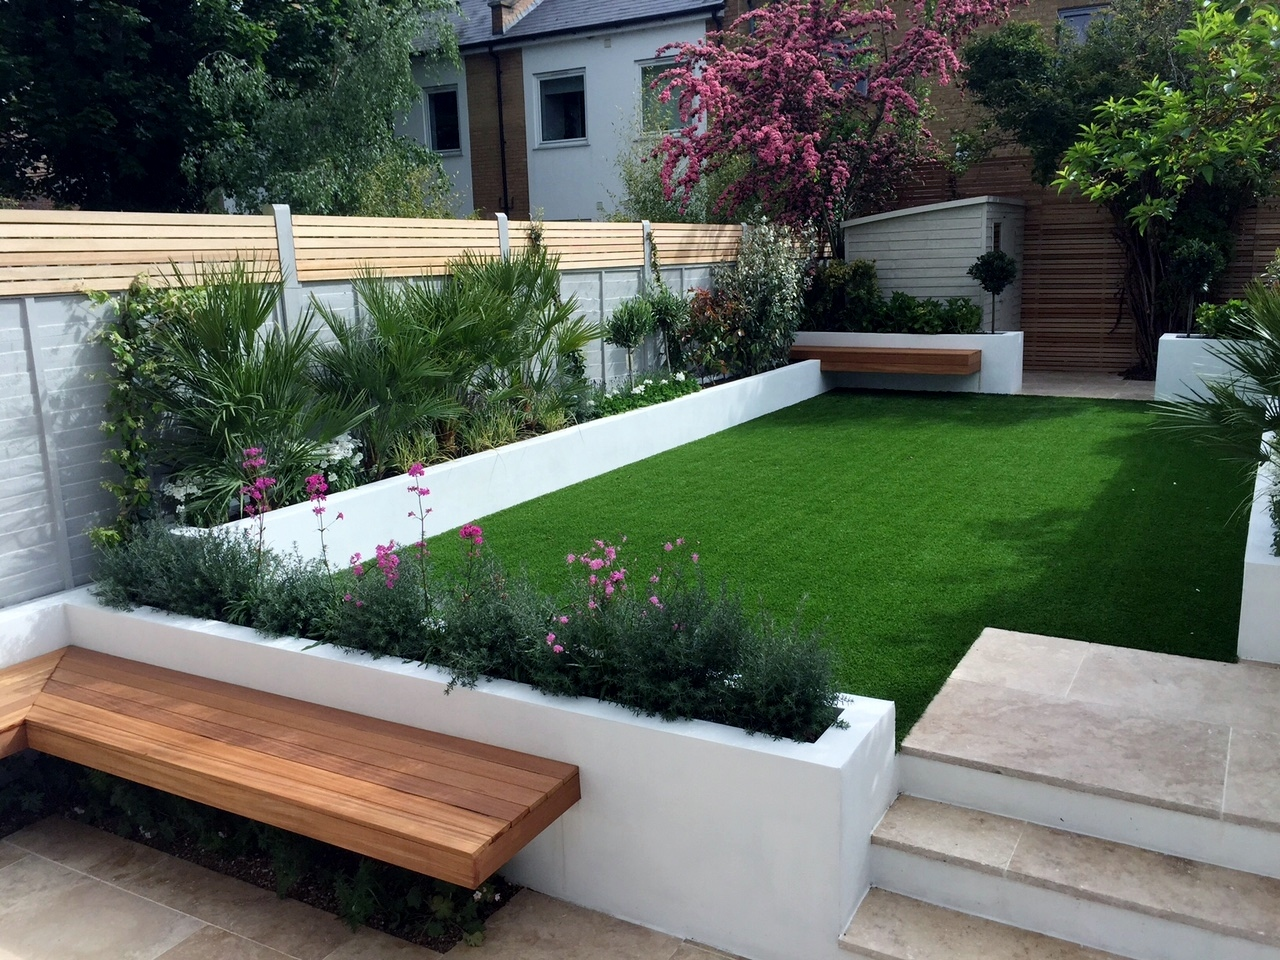 Modern garden design ideas fulham chelsea battersea clapham dulwich london london garden design - Garden ideas london ...